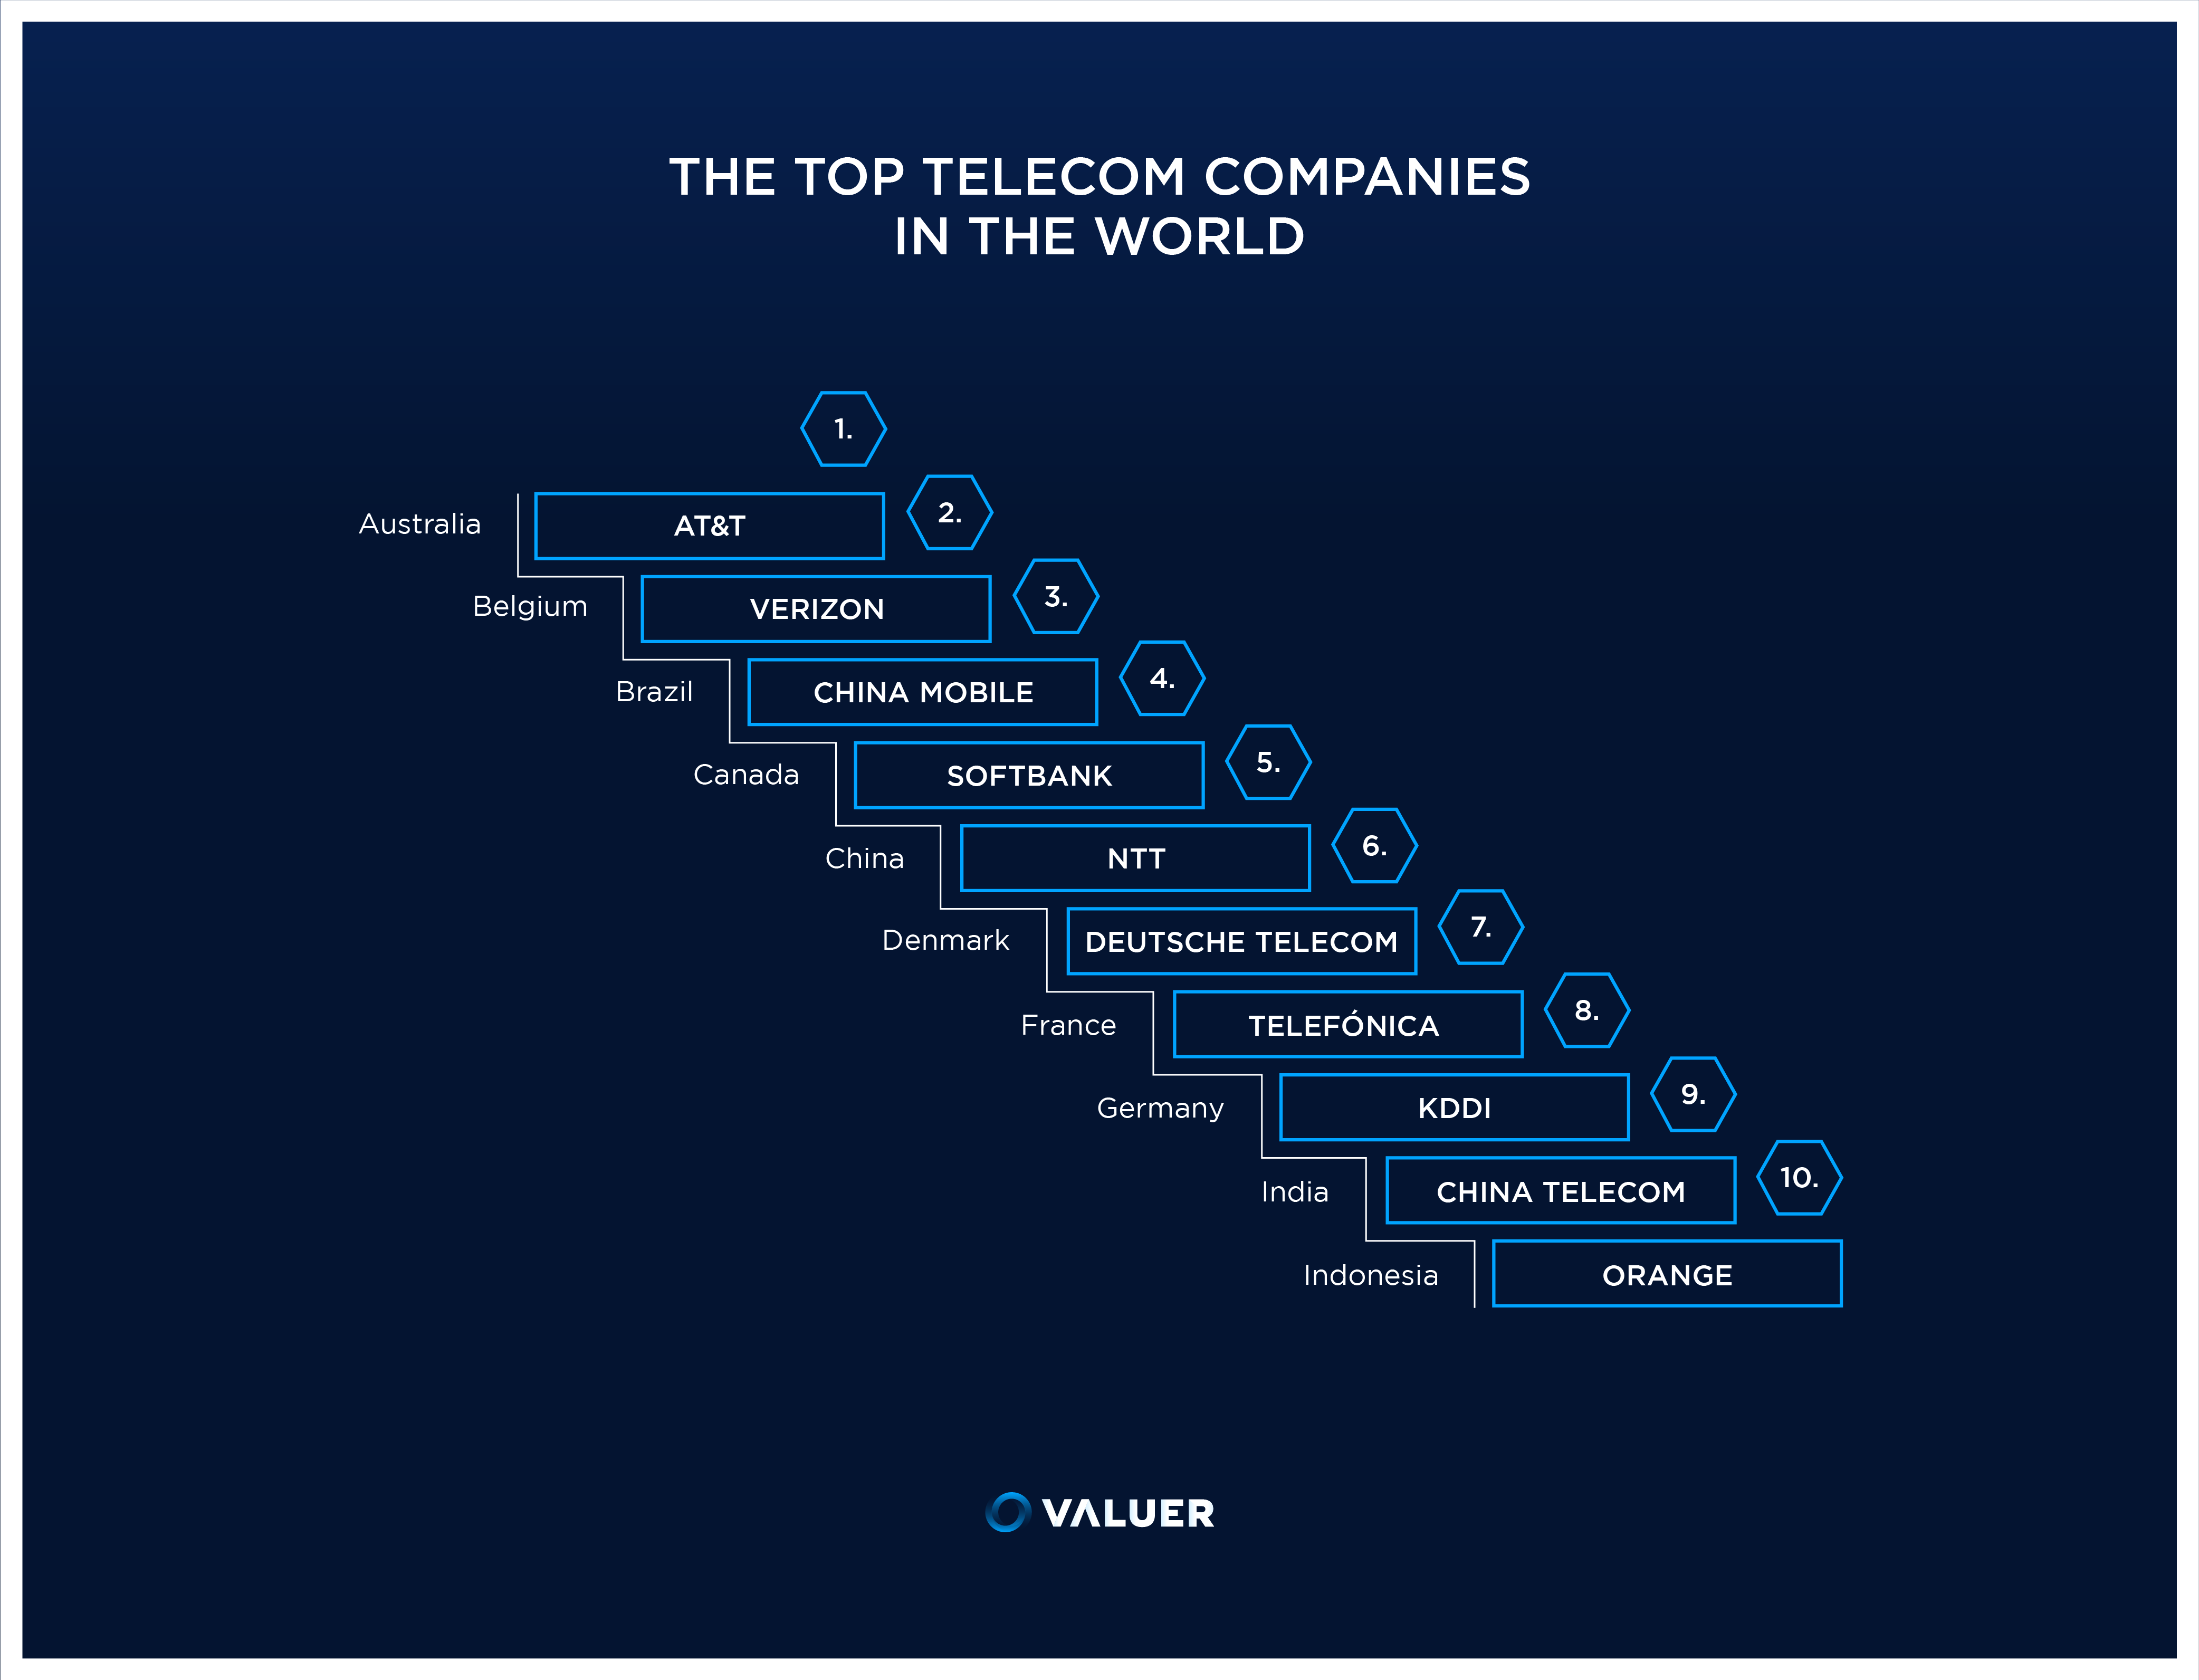 infogrpahic of the top telecom companies in the world